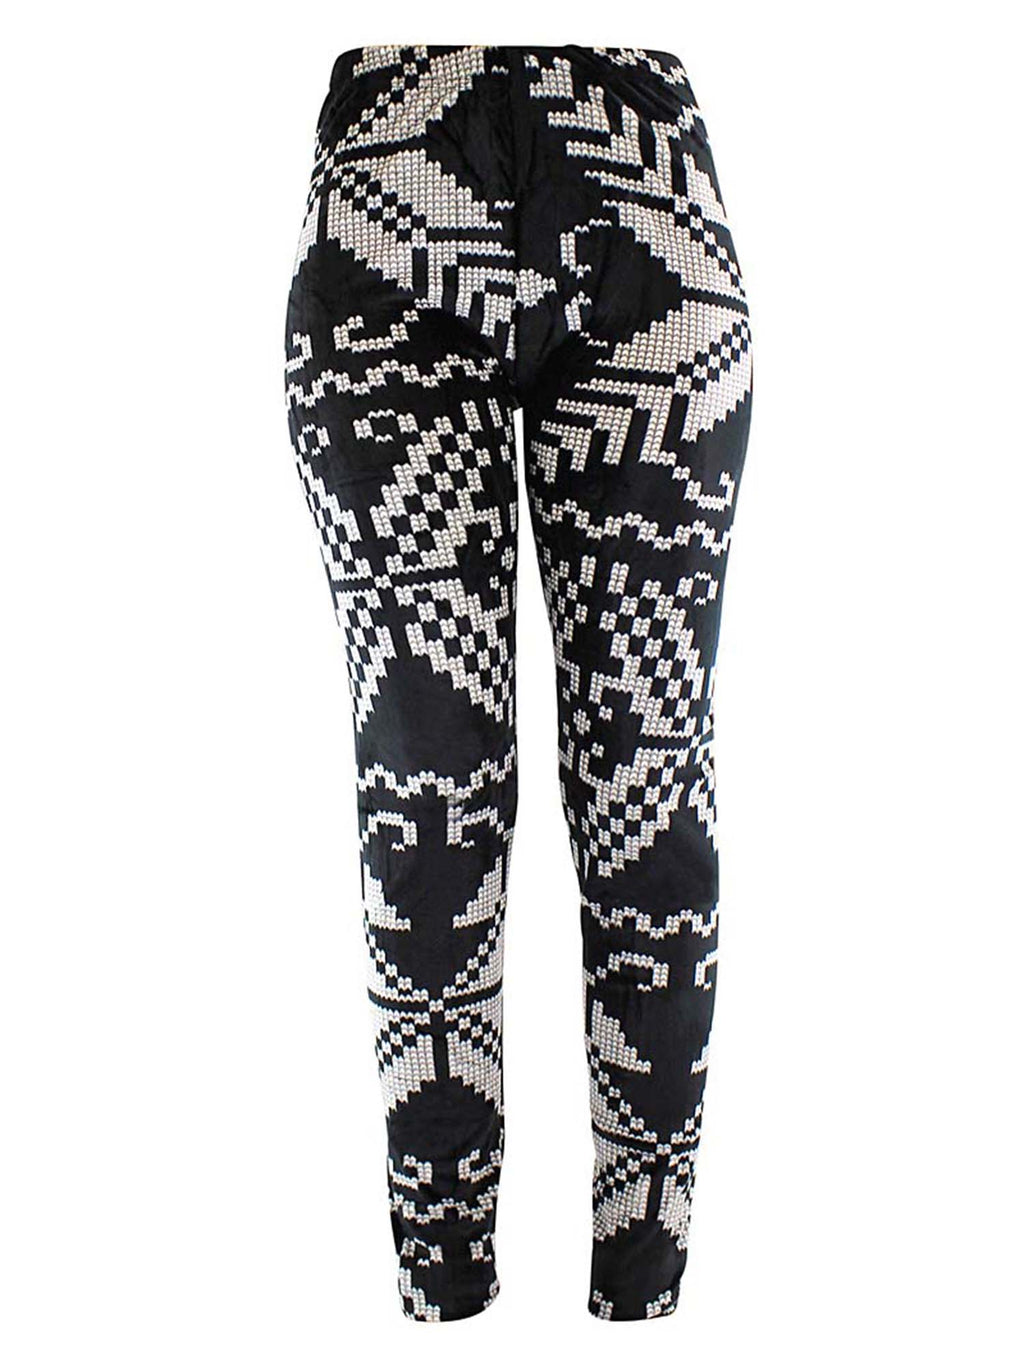 Black & White Winter Snowflake Velour Leggings